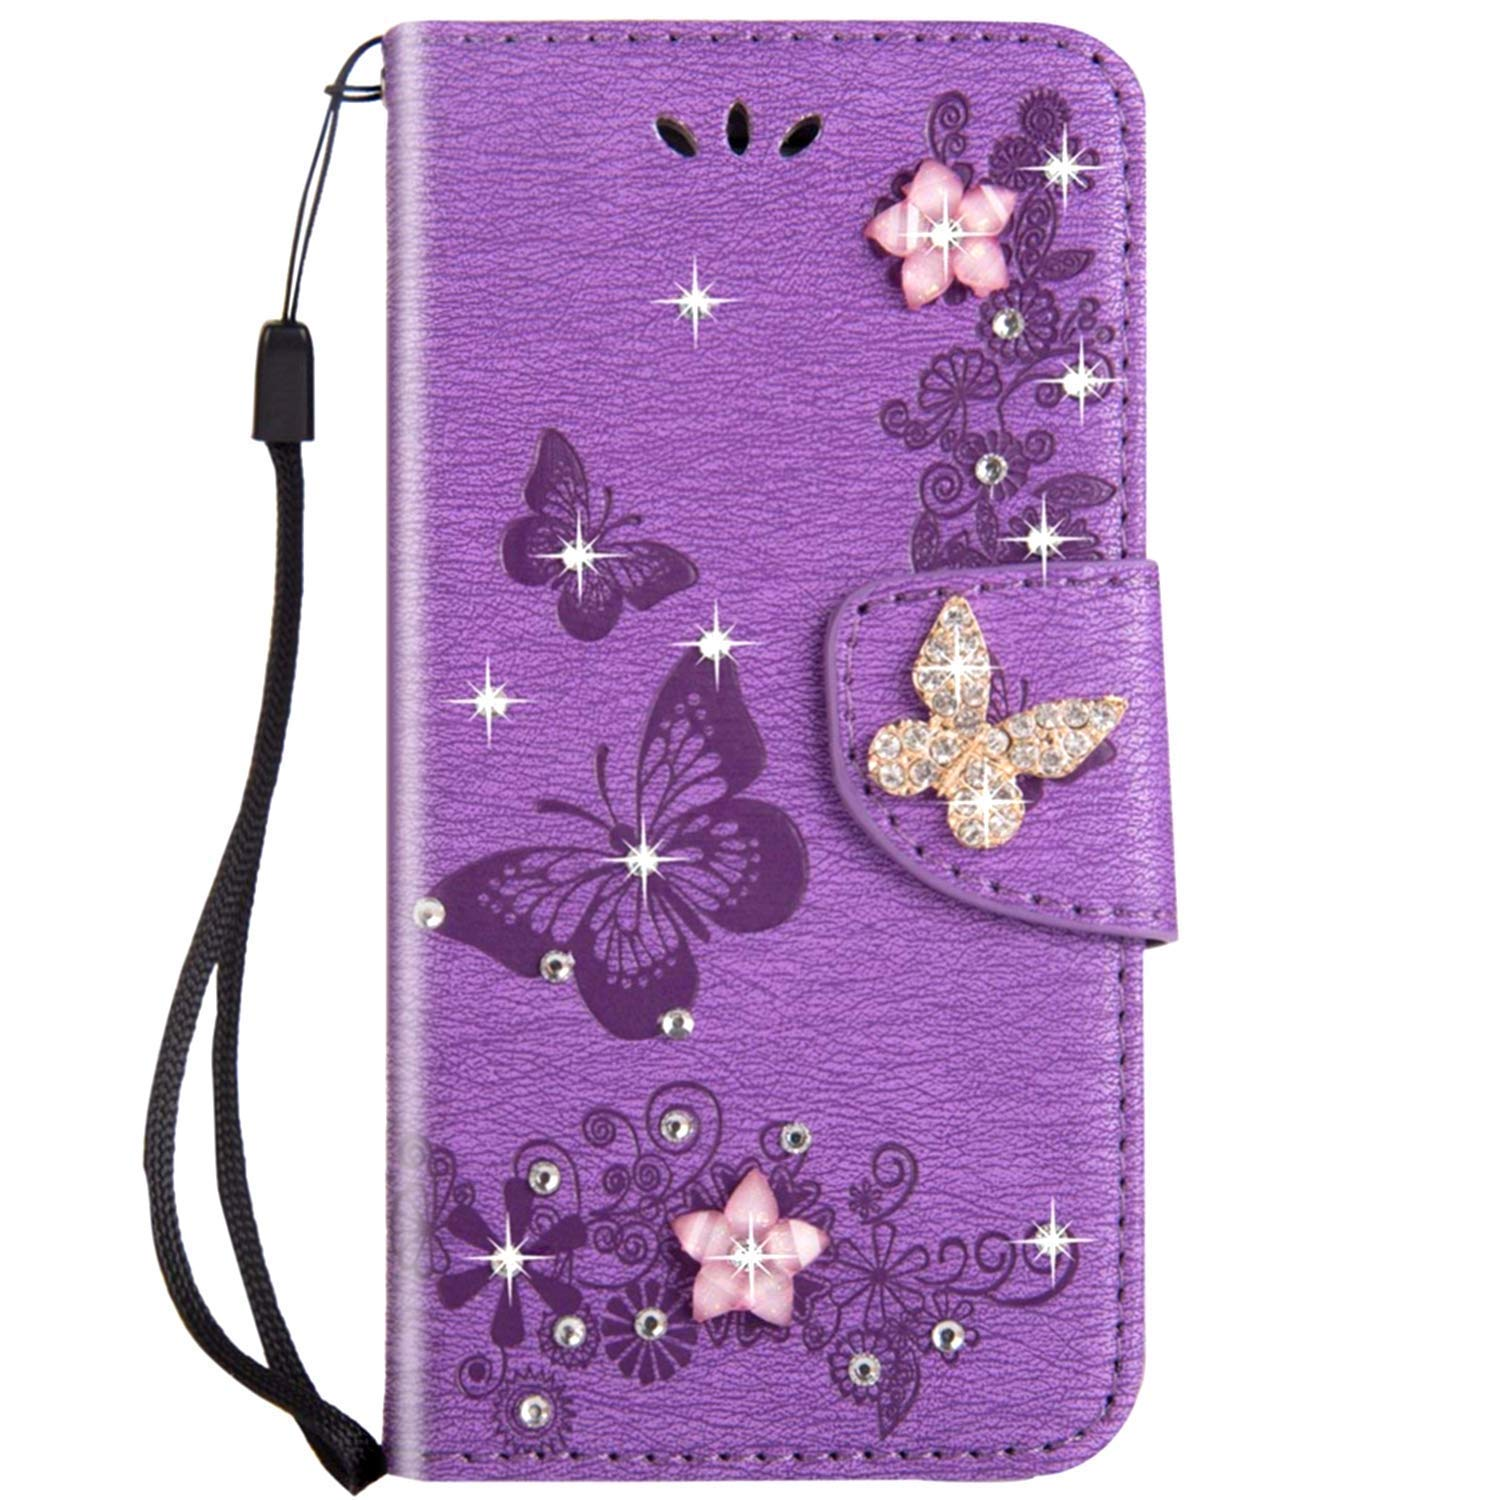 PU Leather Wallet Folio Full Body Cover 3D Bling Sparkly Diamonds Butterfly Design Front and Back Magnetic Closure Card Slots Case,Blue JAWSEU Case Flip Compatible with Samsung Galaxy S7 Edge